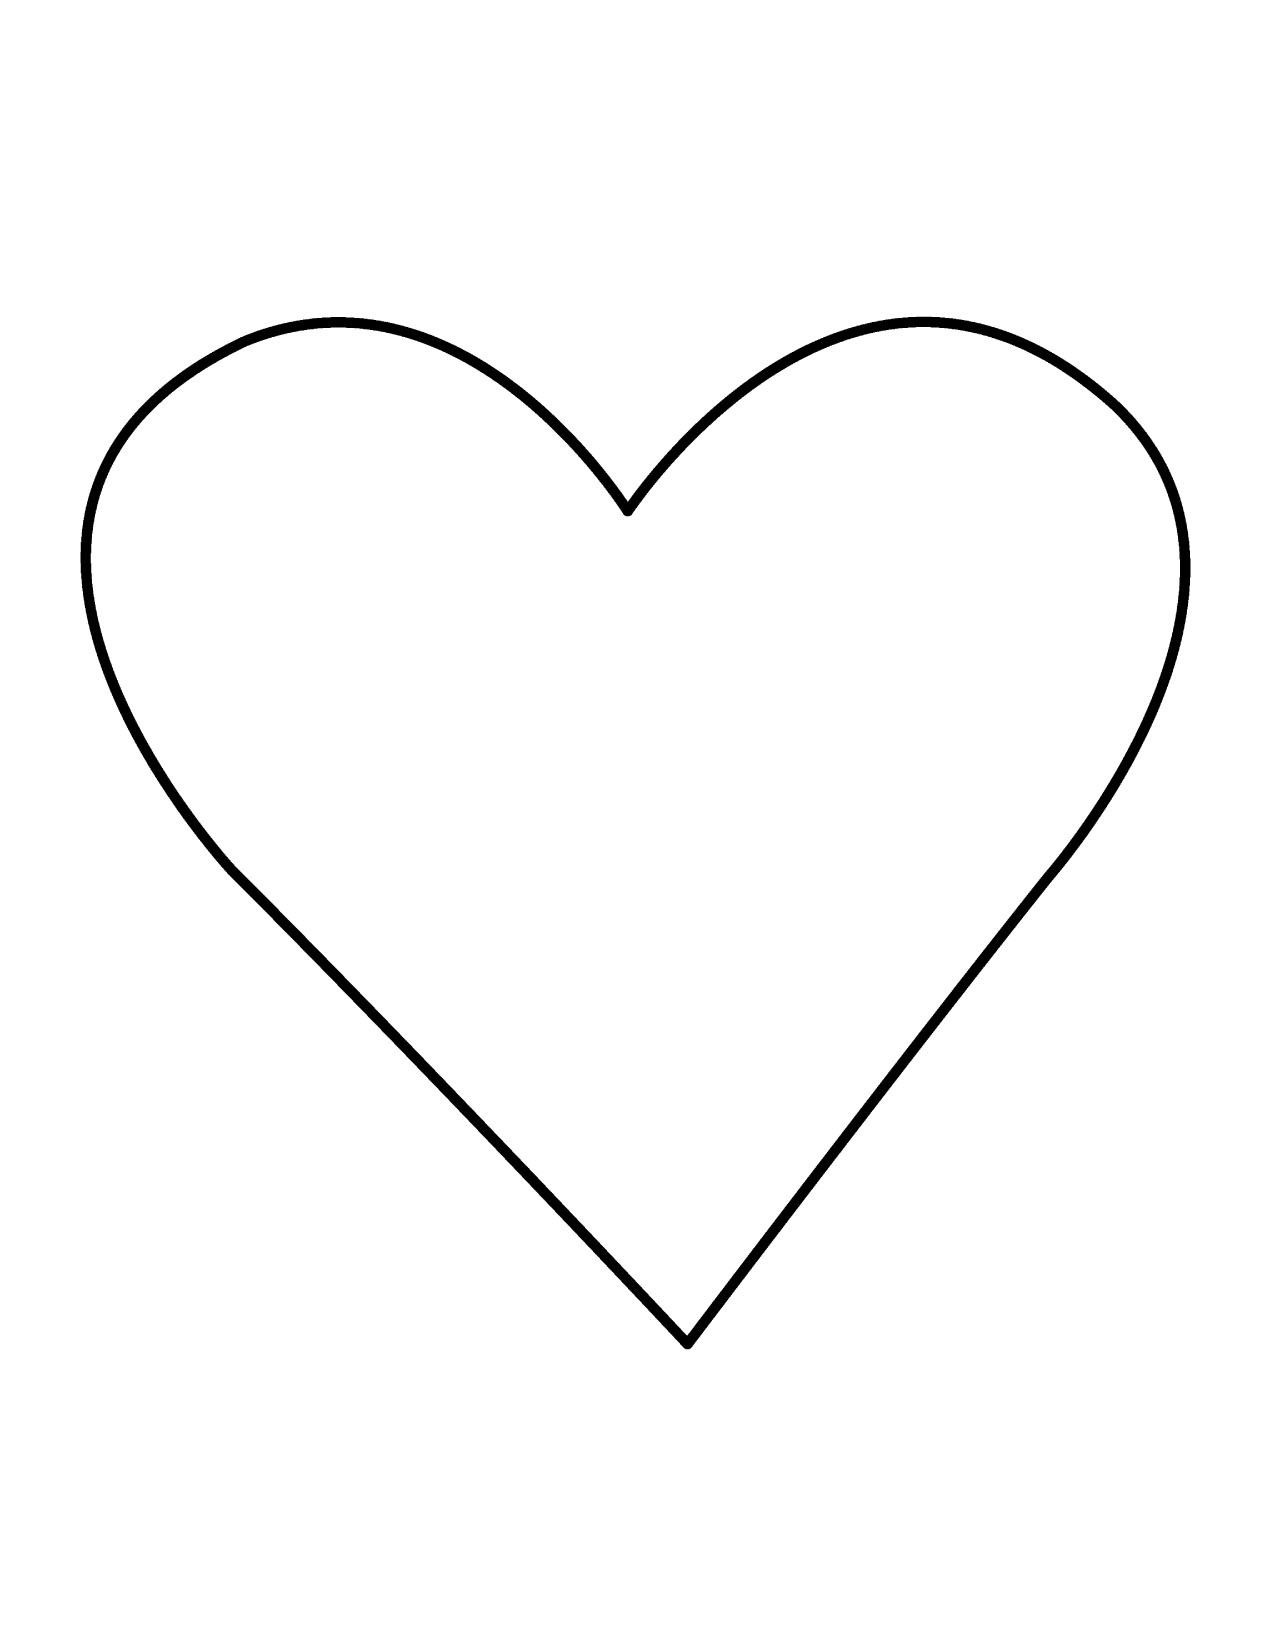 Clip Art Heart Outline